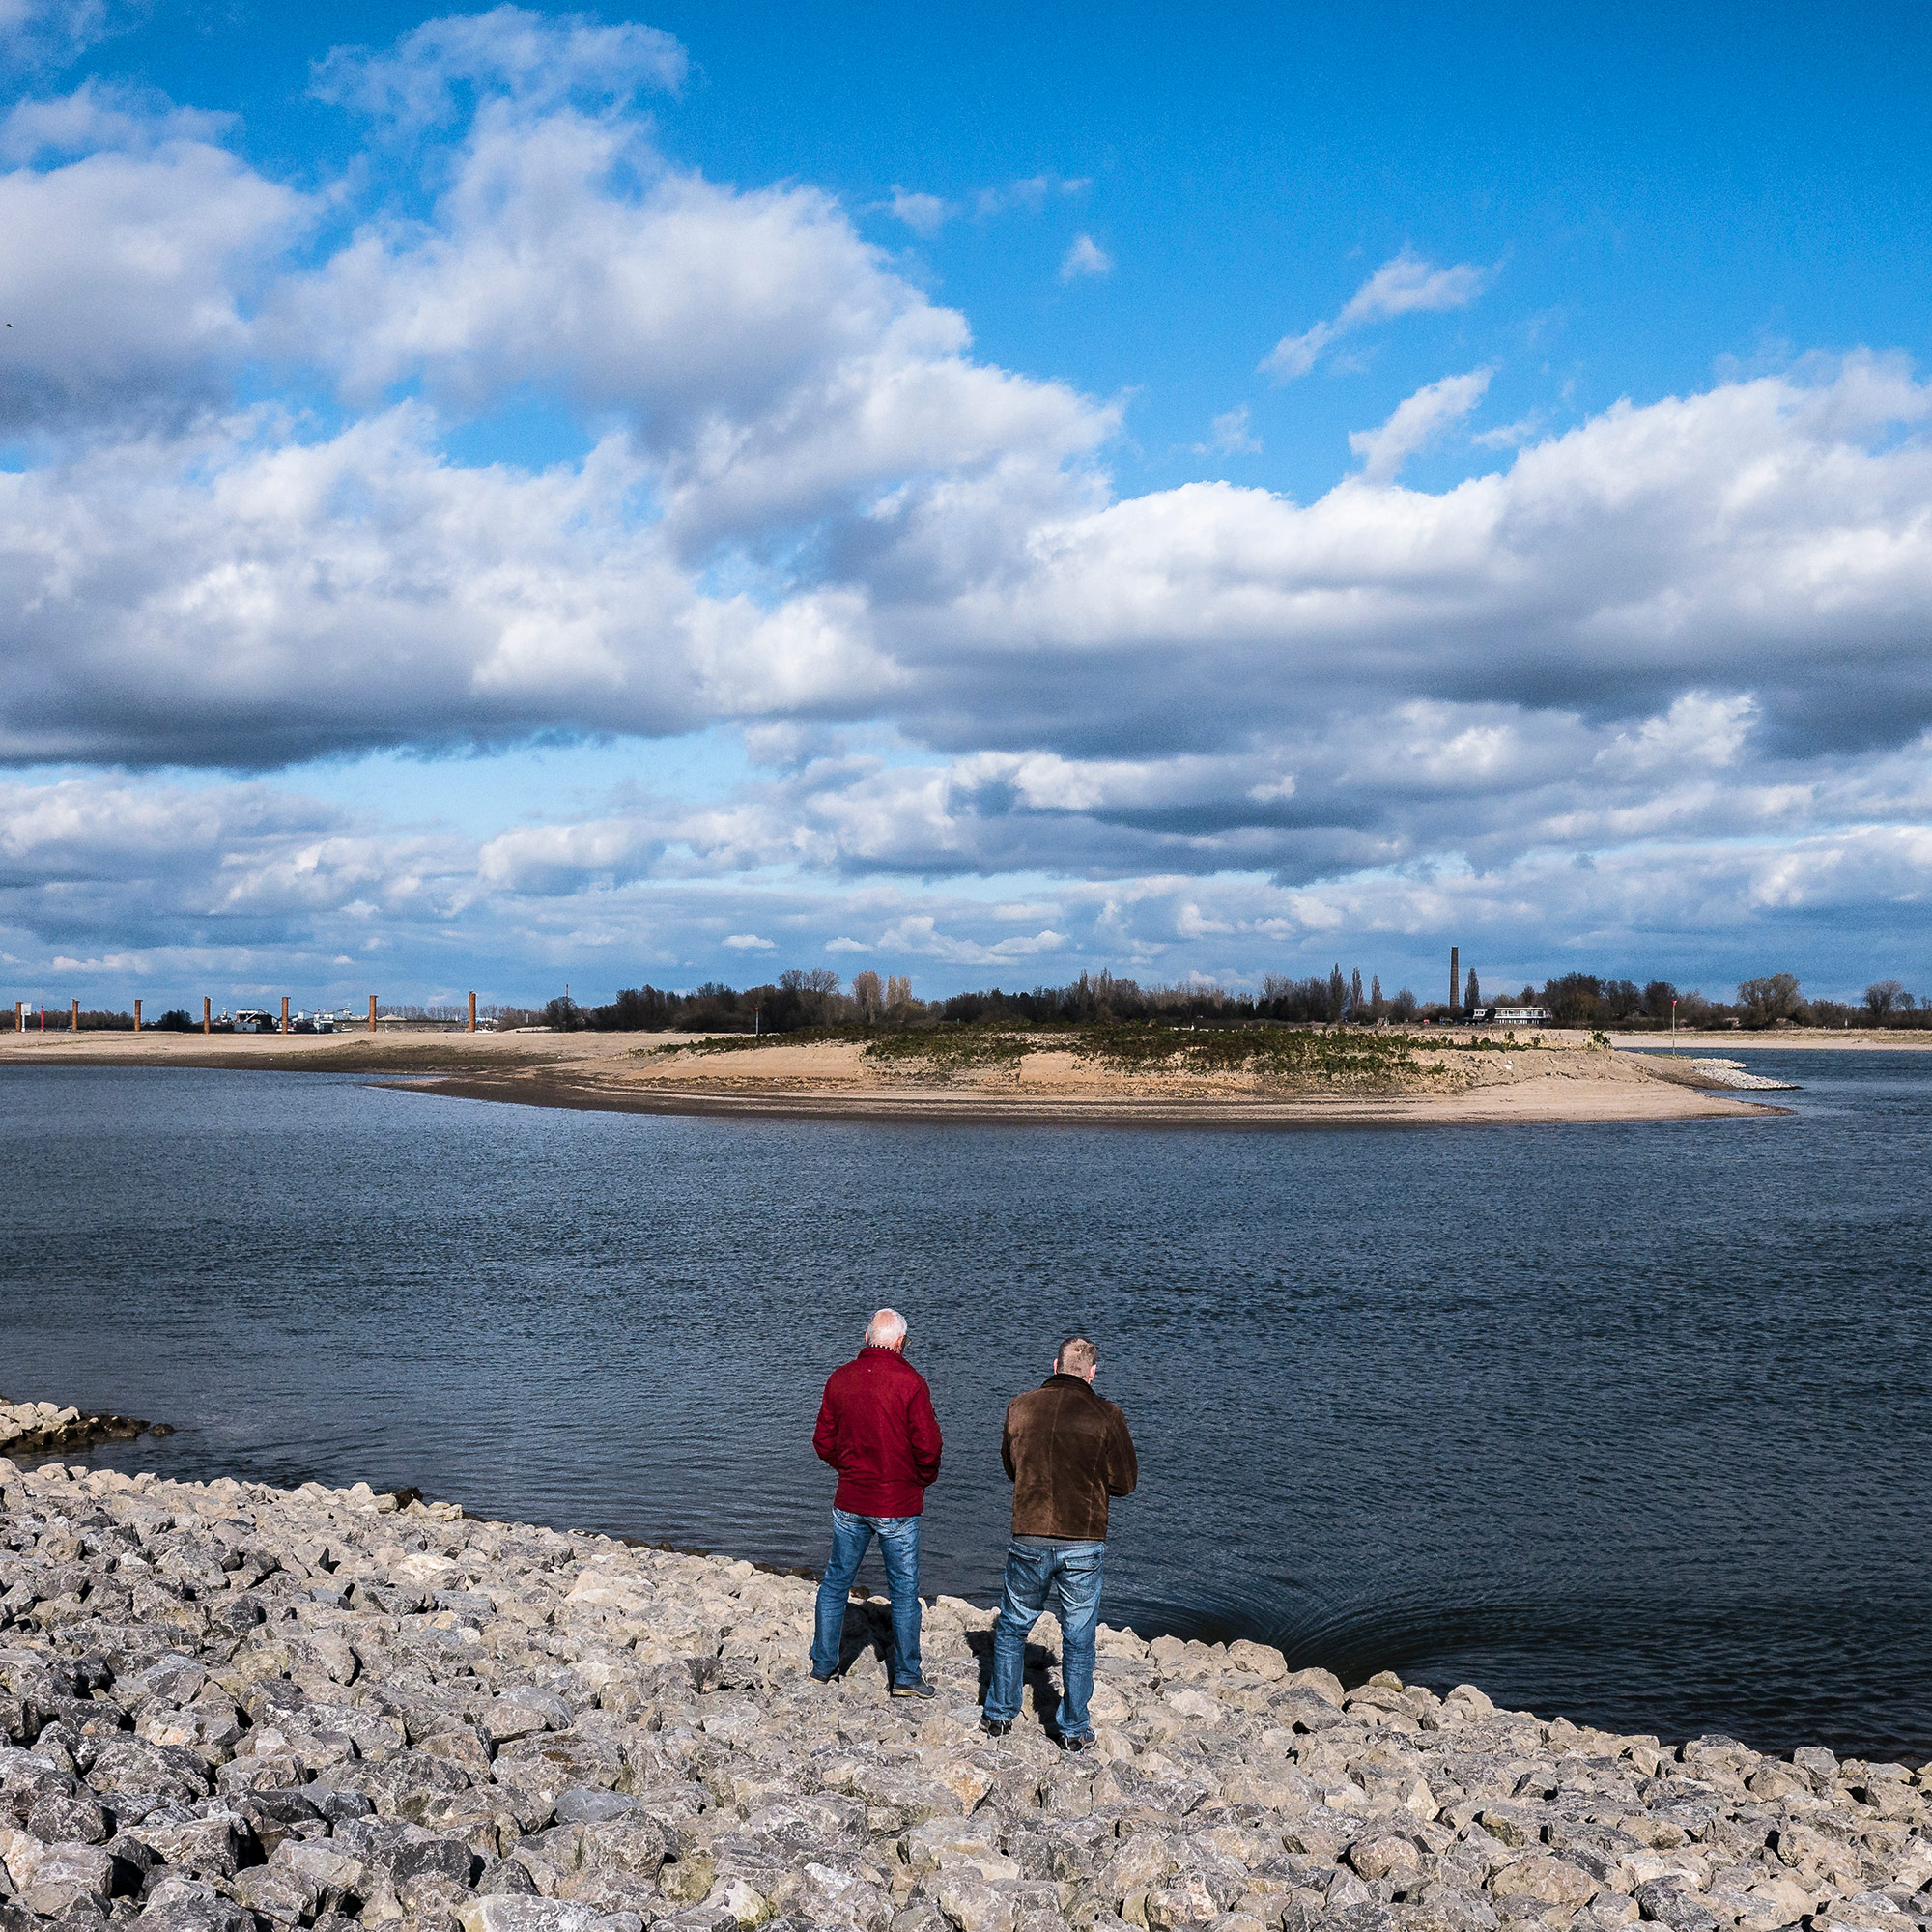 """New landscapes along the """"spiegelwaal,"""" a new channel created to lessen flooding at the river bend where Nijmegen and Lent sit. (Photo by Joris van Gennip/GroundTruth)"""